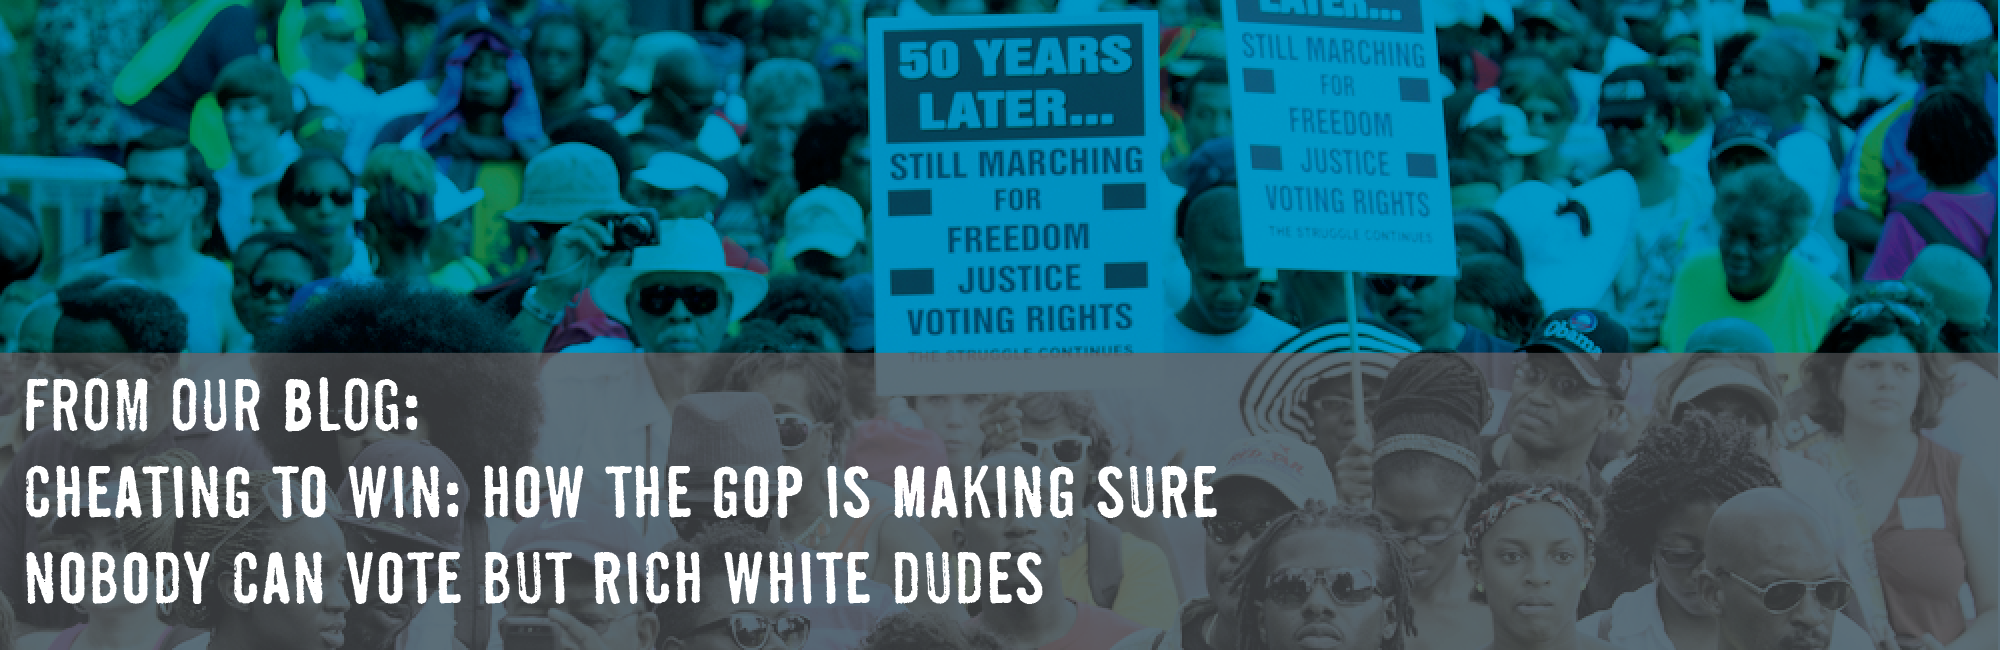 Cheating to Win? How the GOP is making sure nobody can vote but rich white dudes.